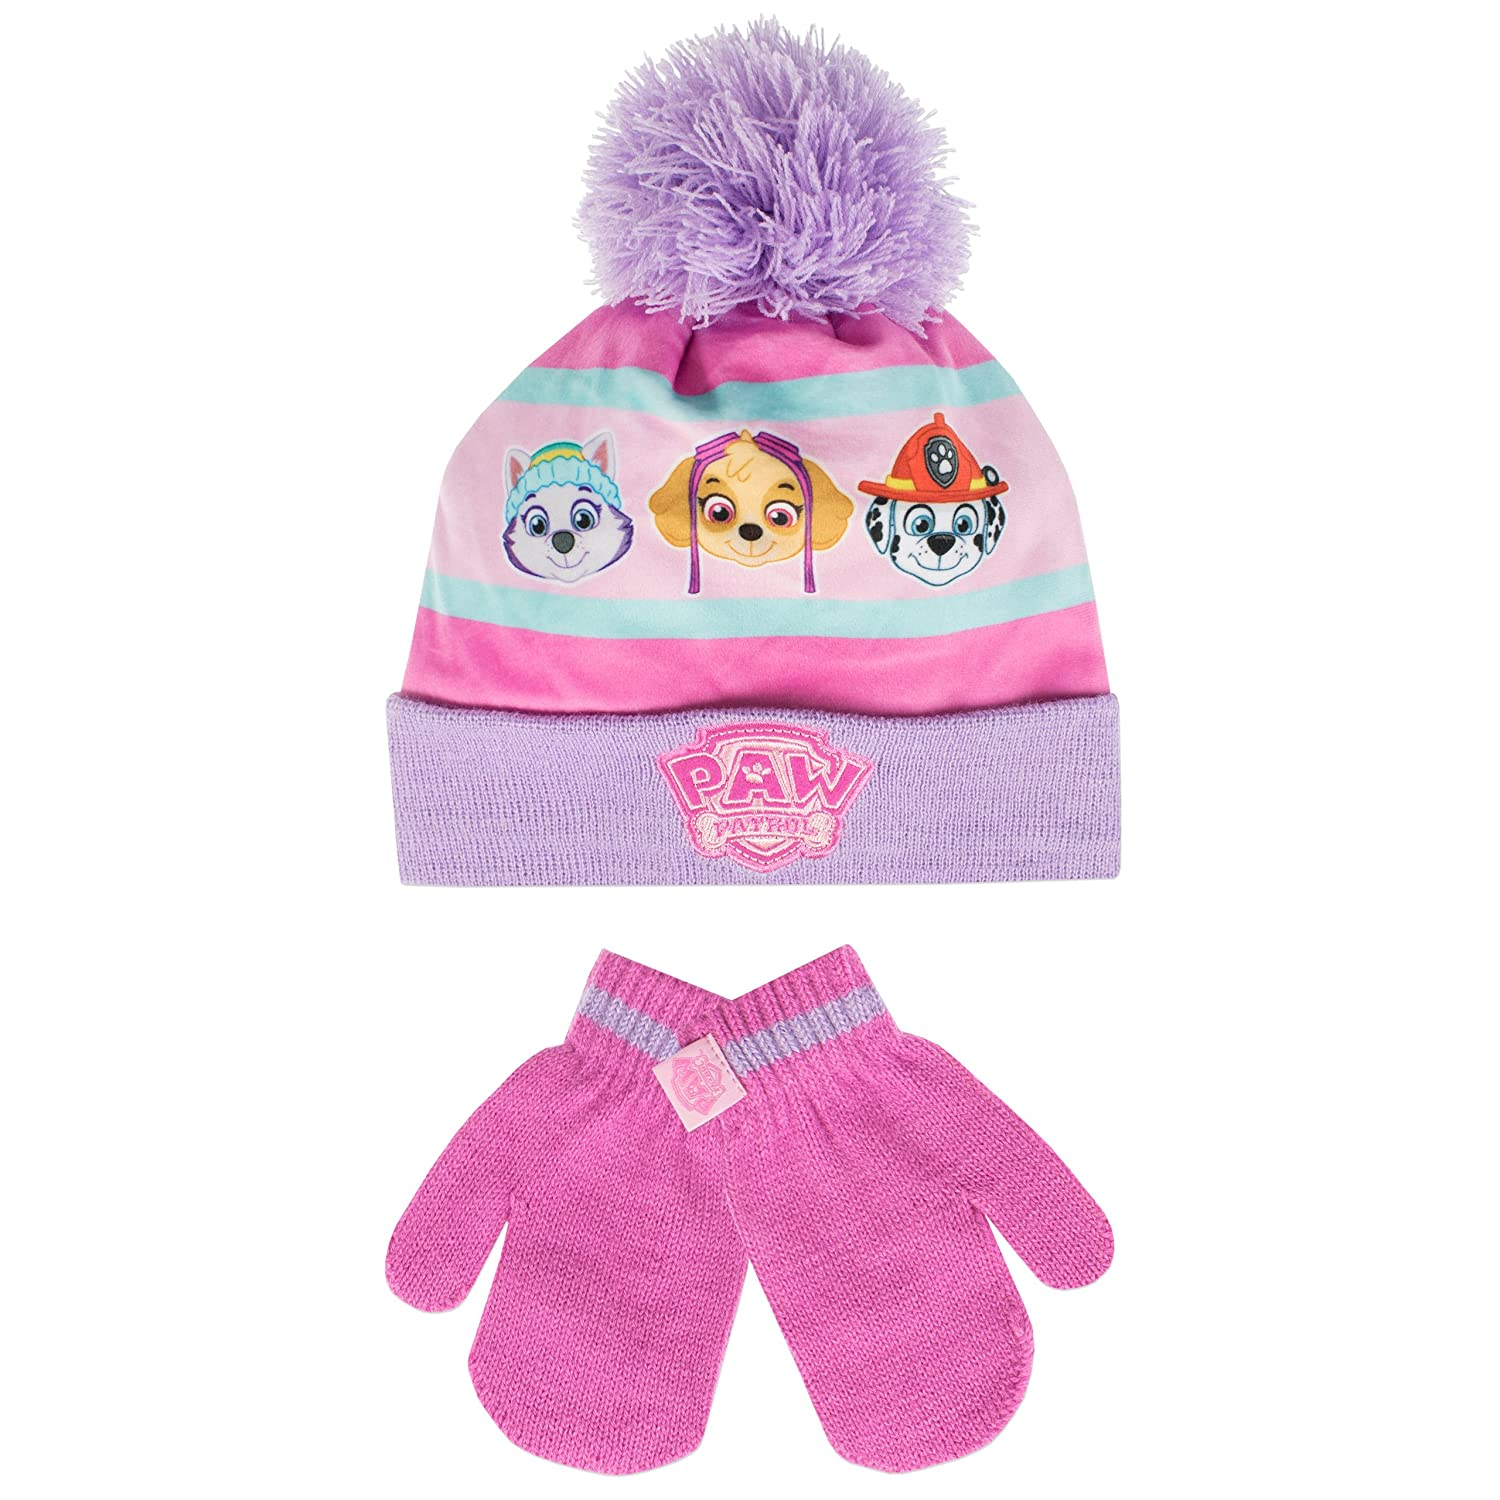 Paw Patrol Girls Paw Patrol Hat and Gloves Set Ages 2 to 8 Years